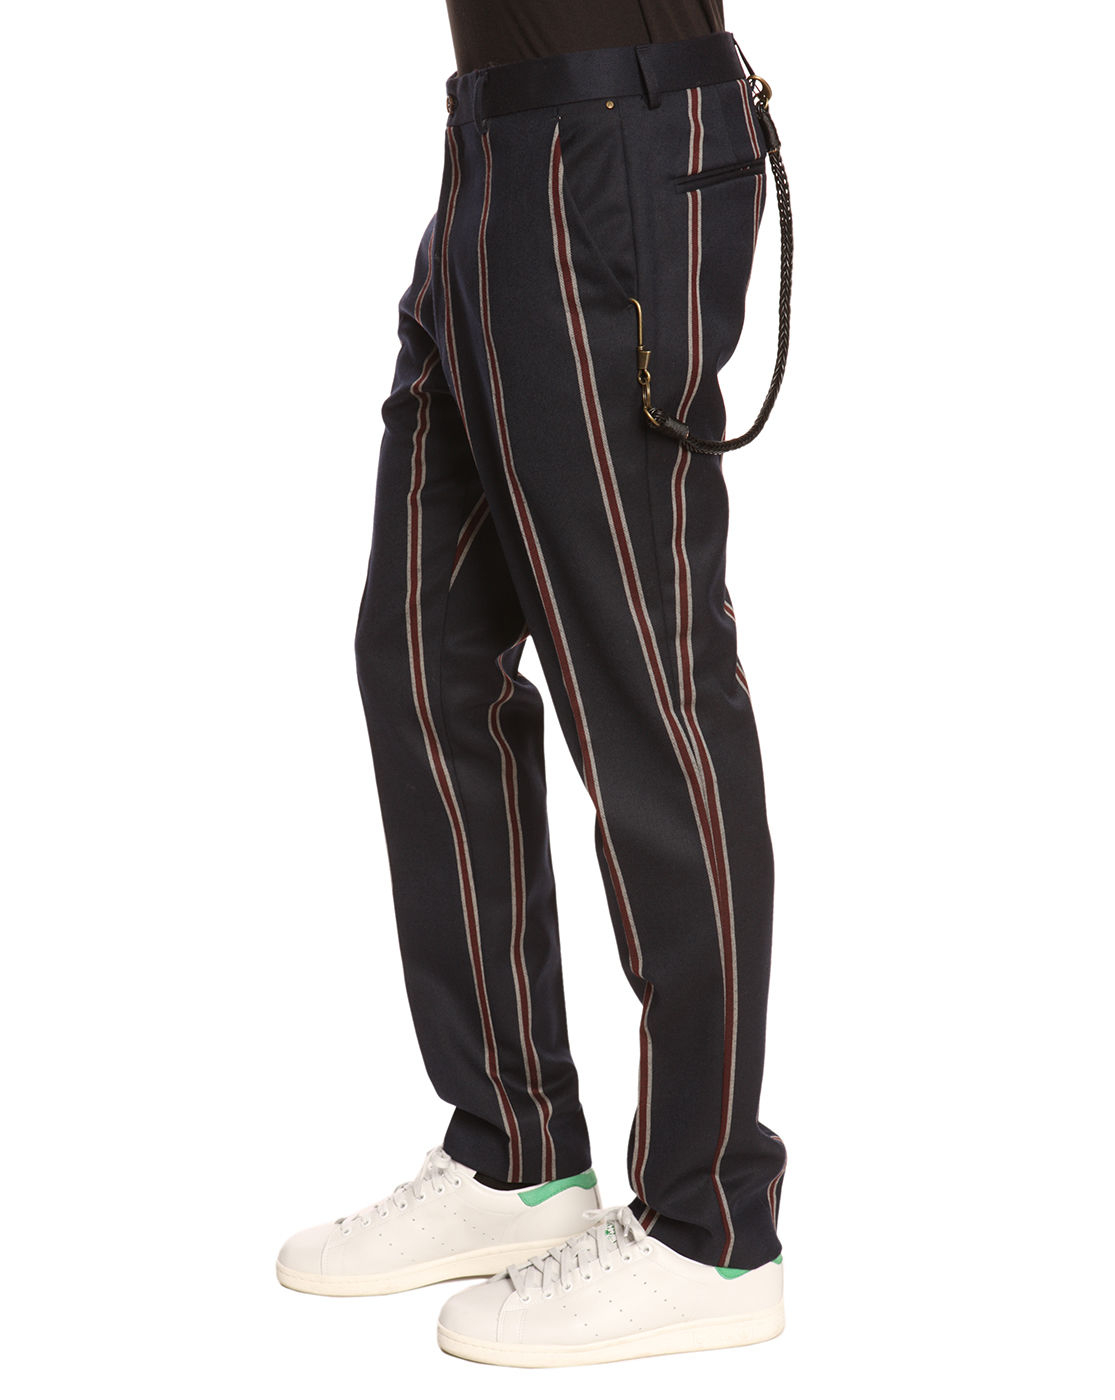 Atelier scotch navy blue striped wool trousers integrated for Atelier maison scotch